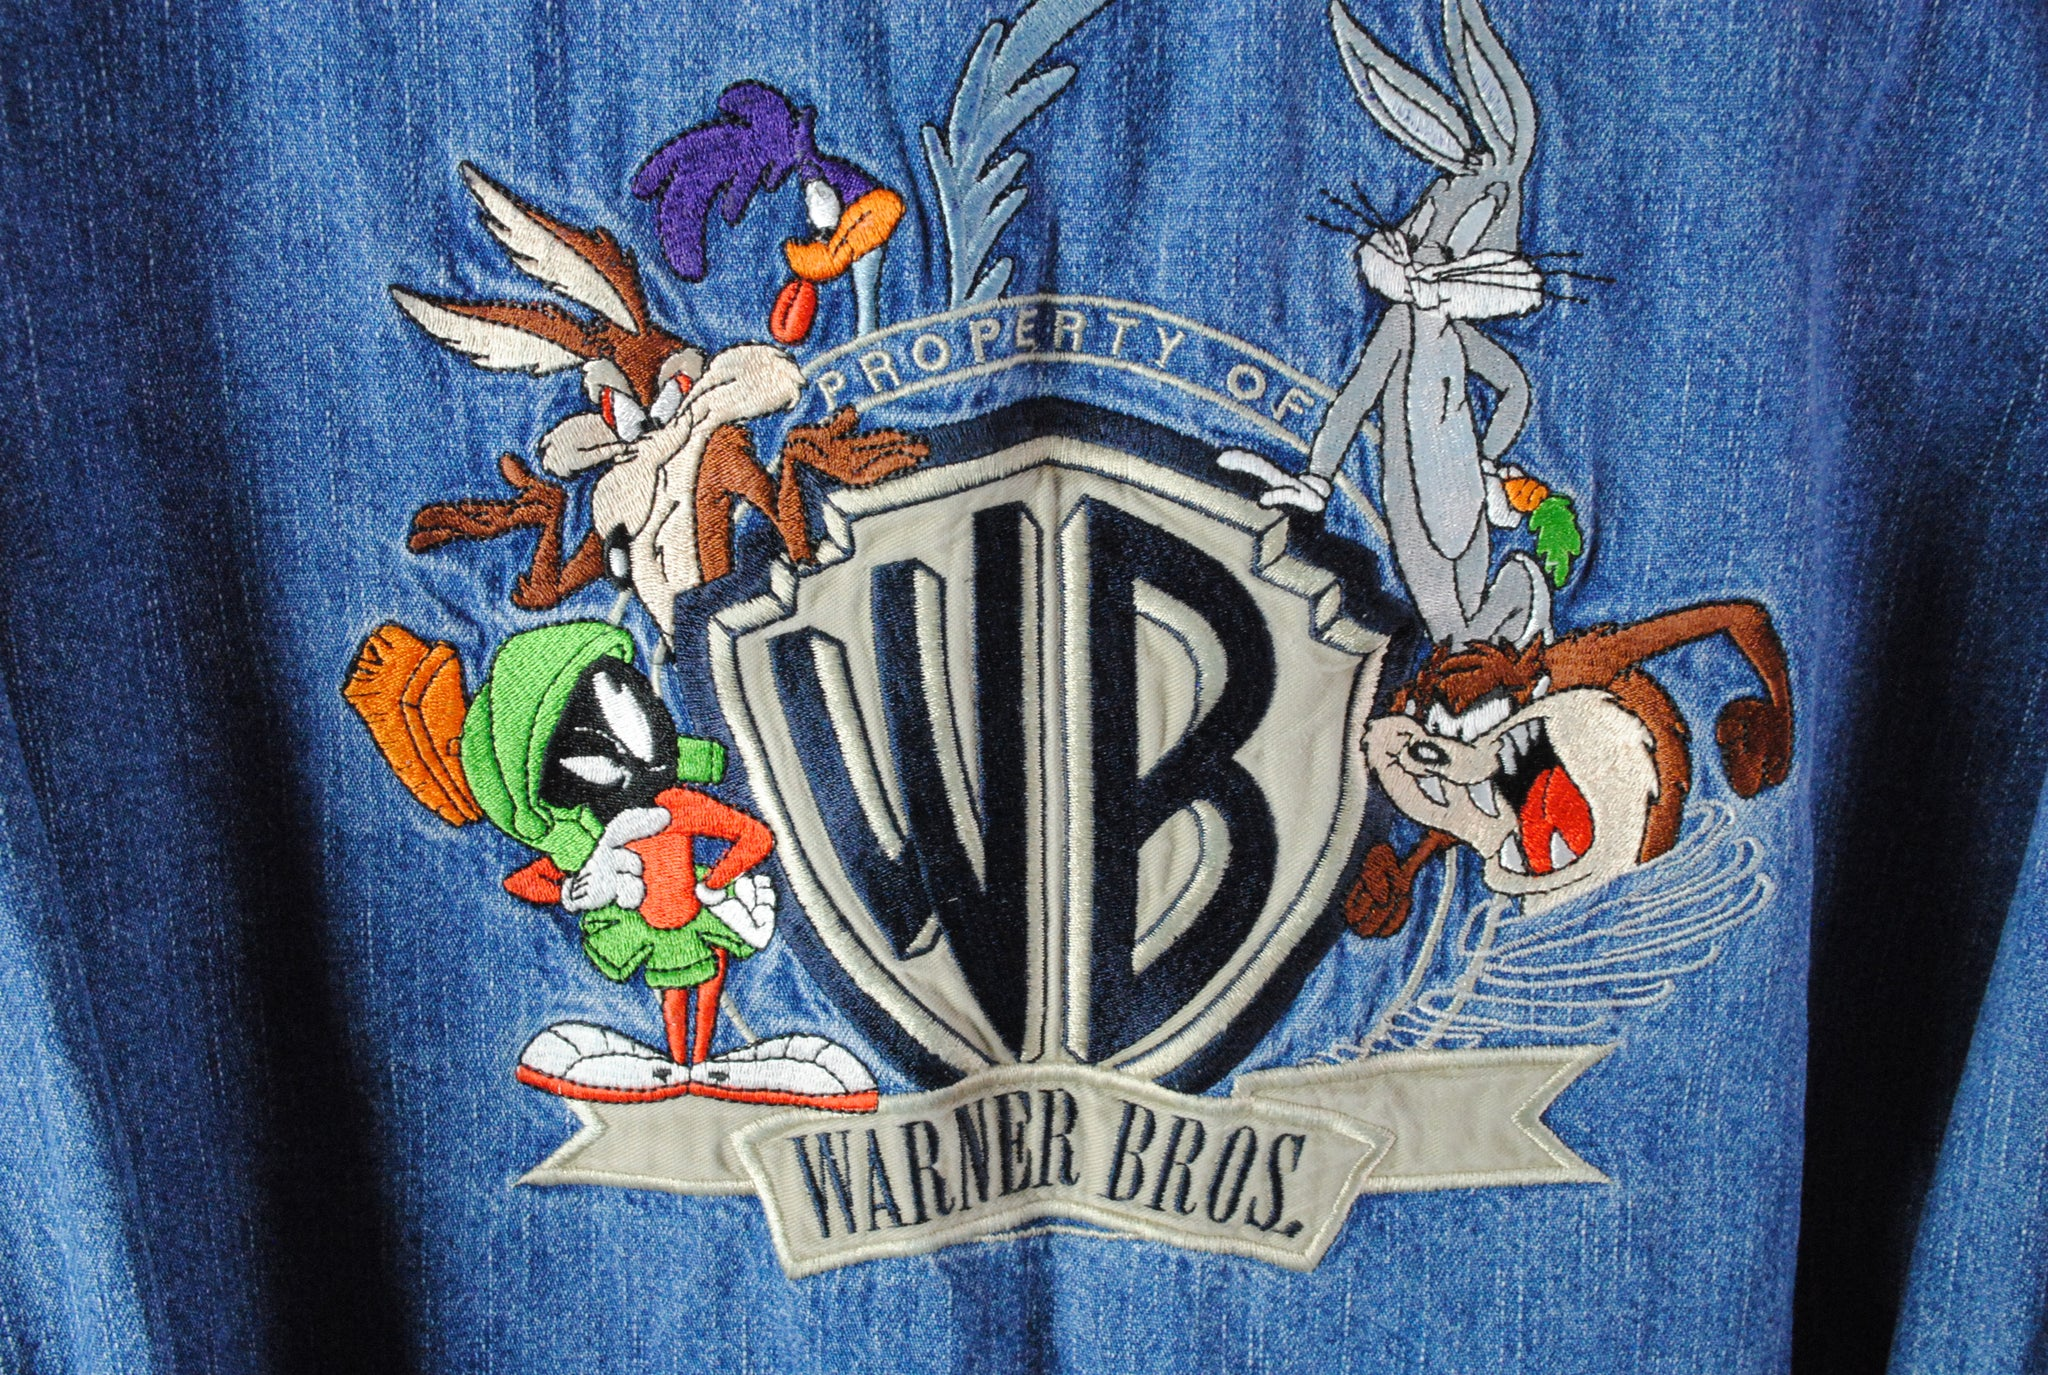 Vintage Warner Bros Denim Shirt XLarge